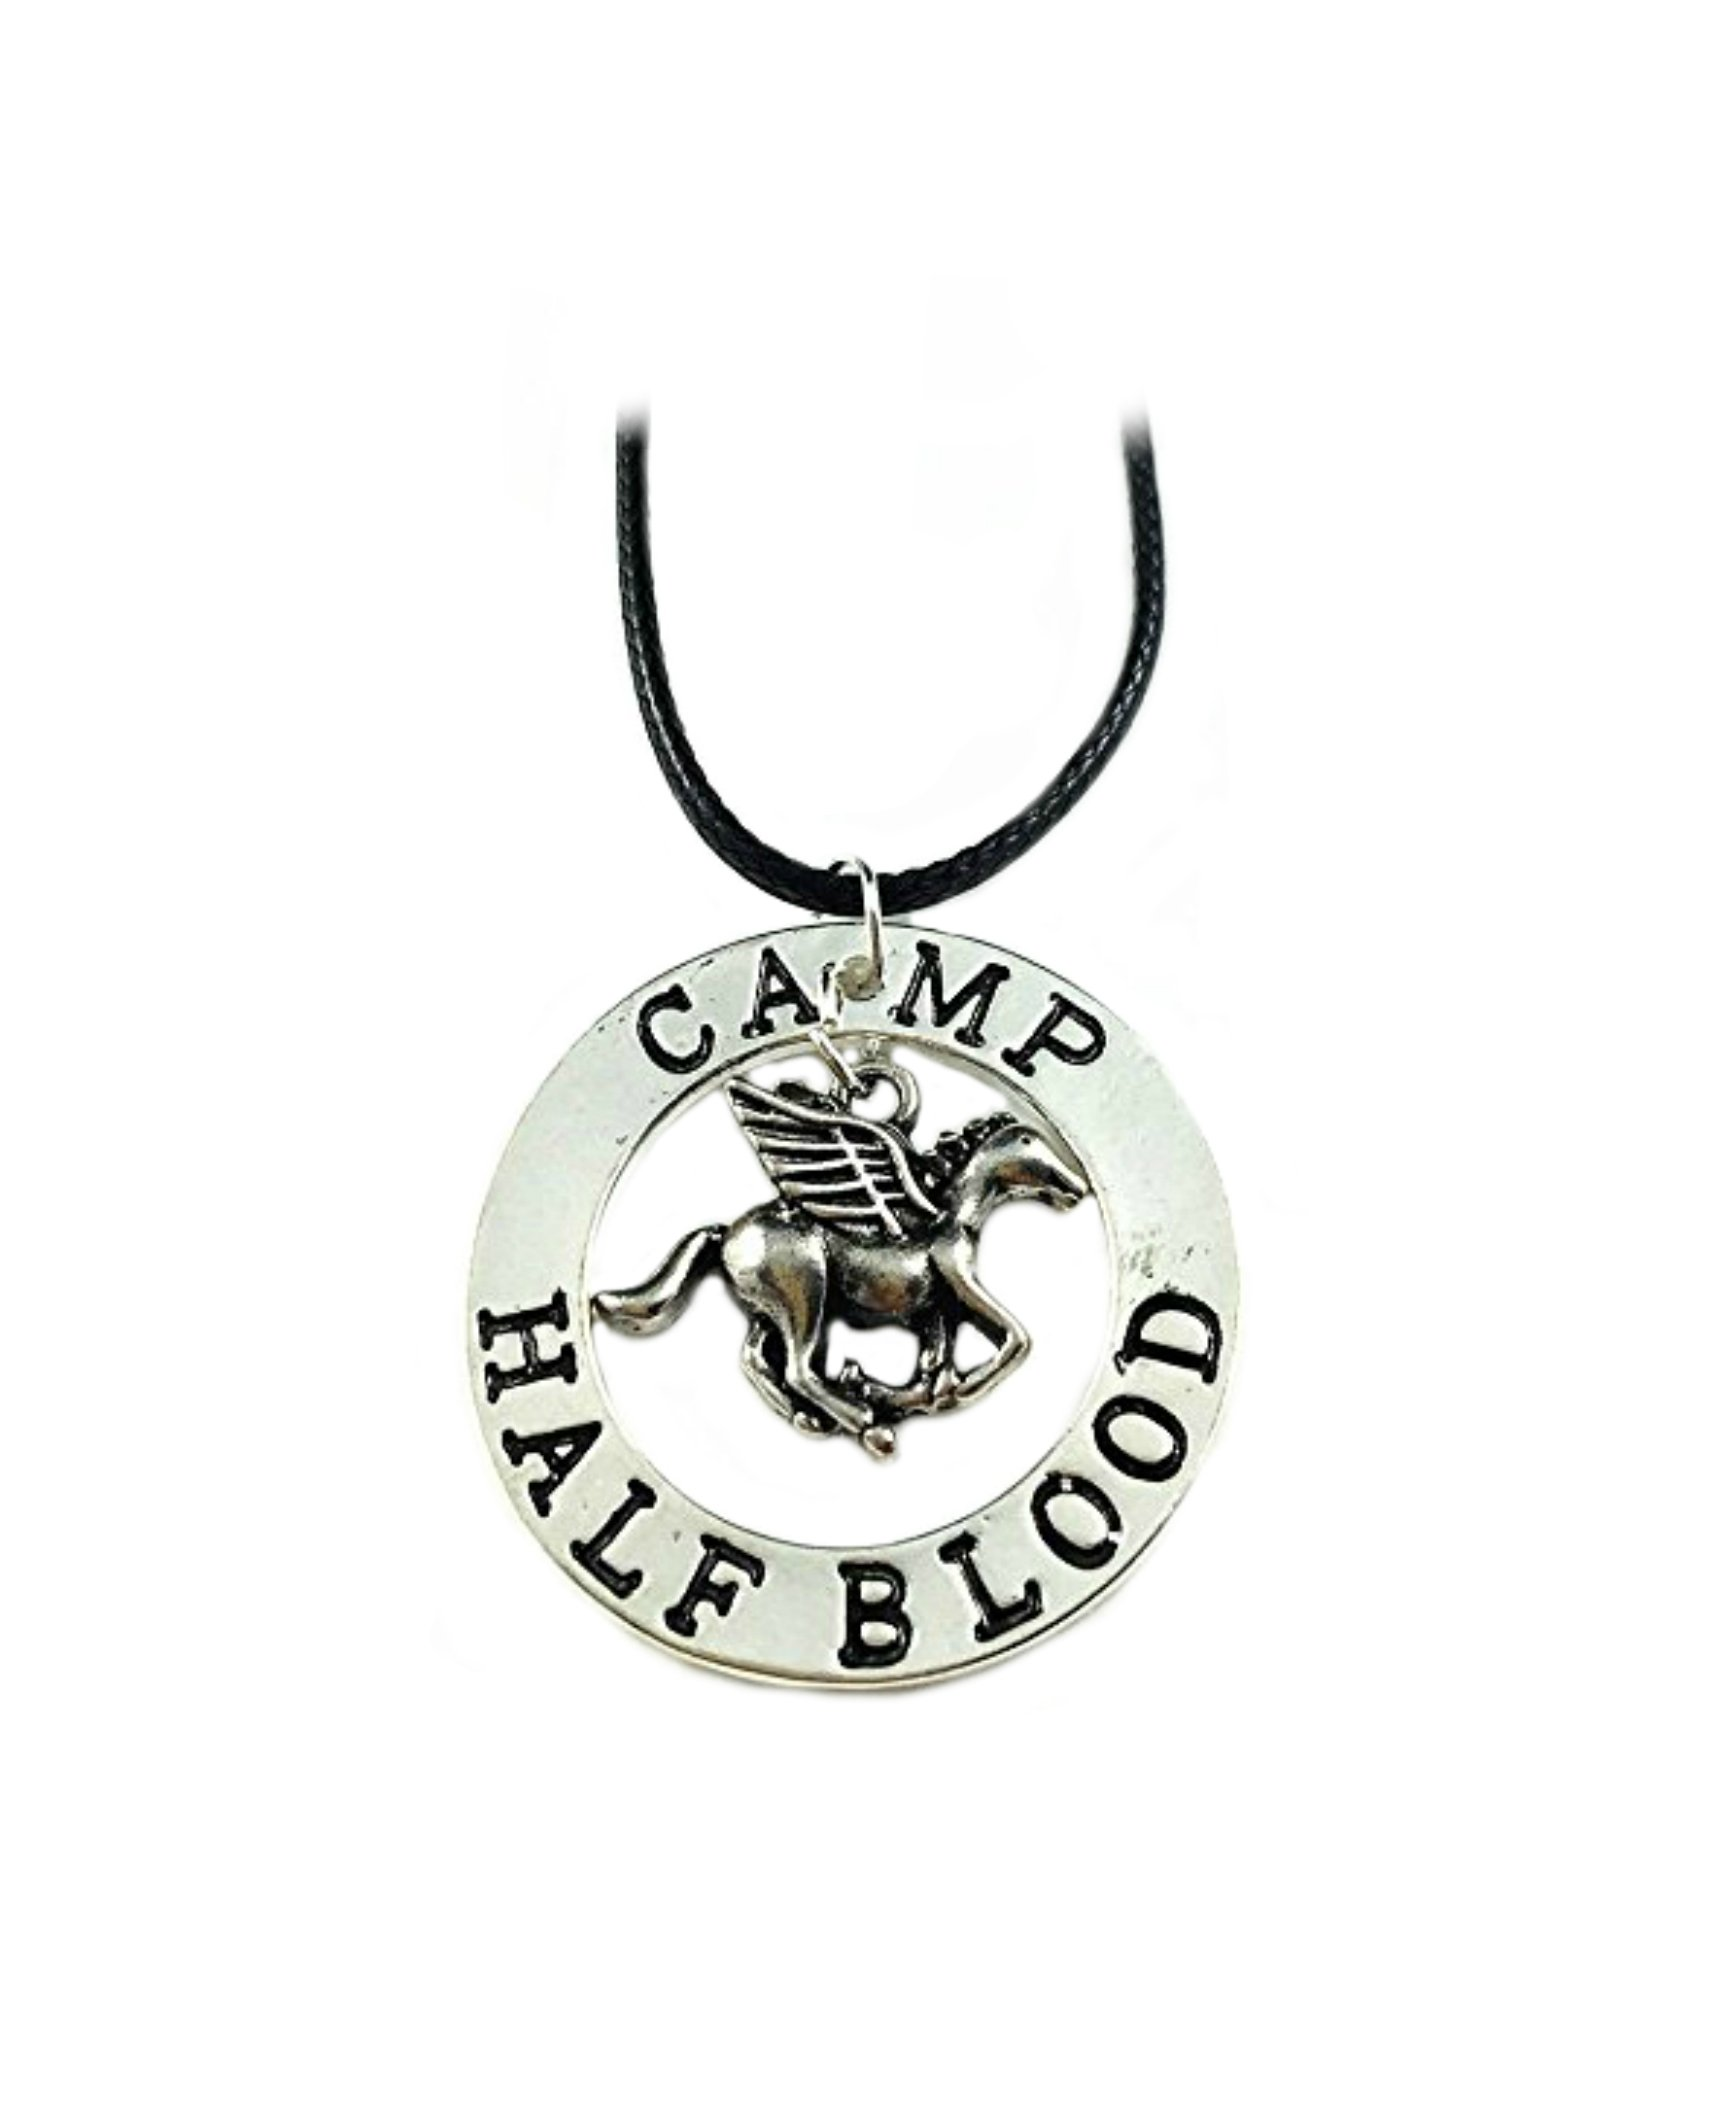 Percy Jackson Necklace Pendant - Camp Half Blood - Movies Books Cosplay Series by Athena Brands